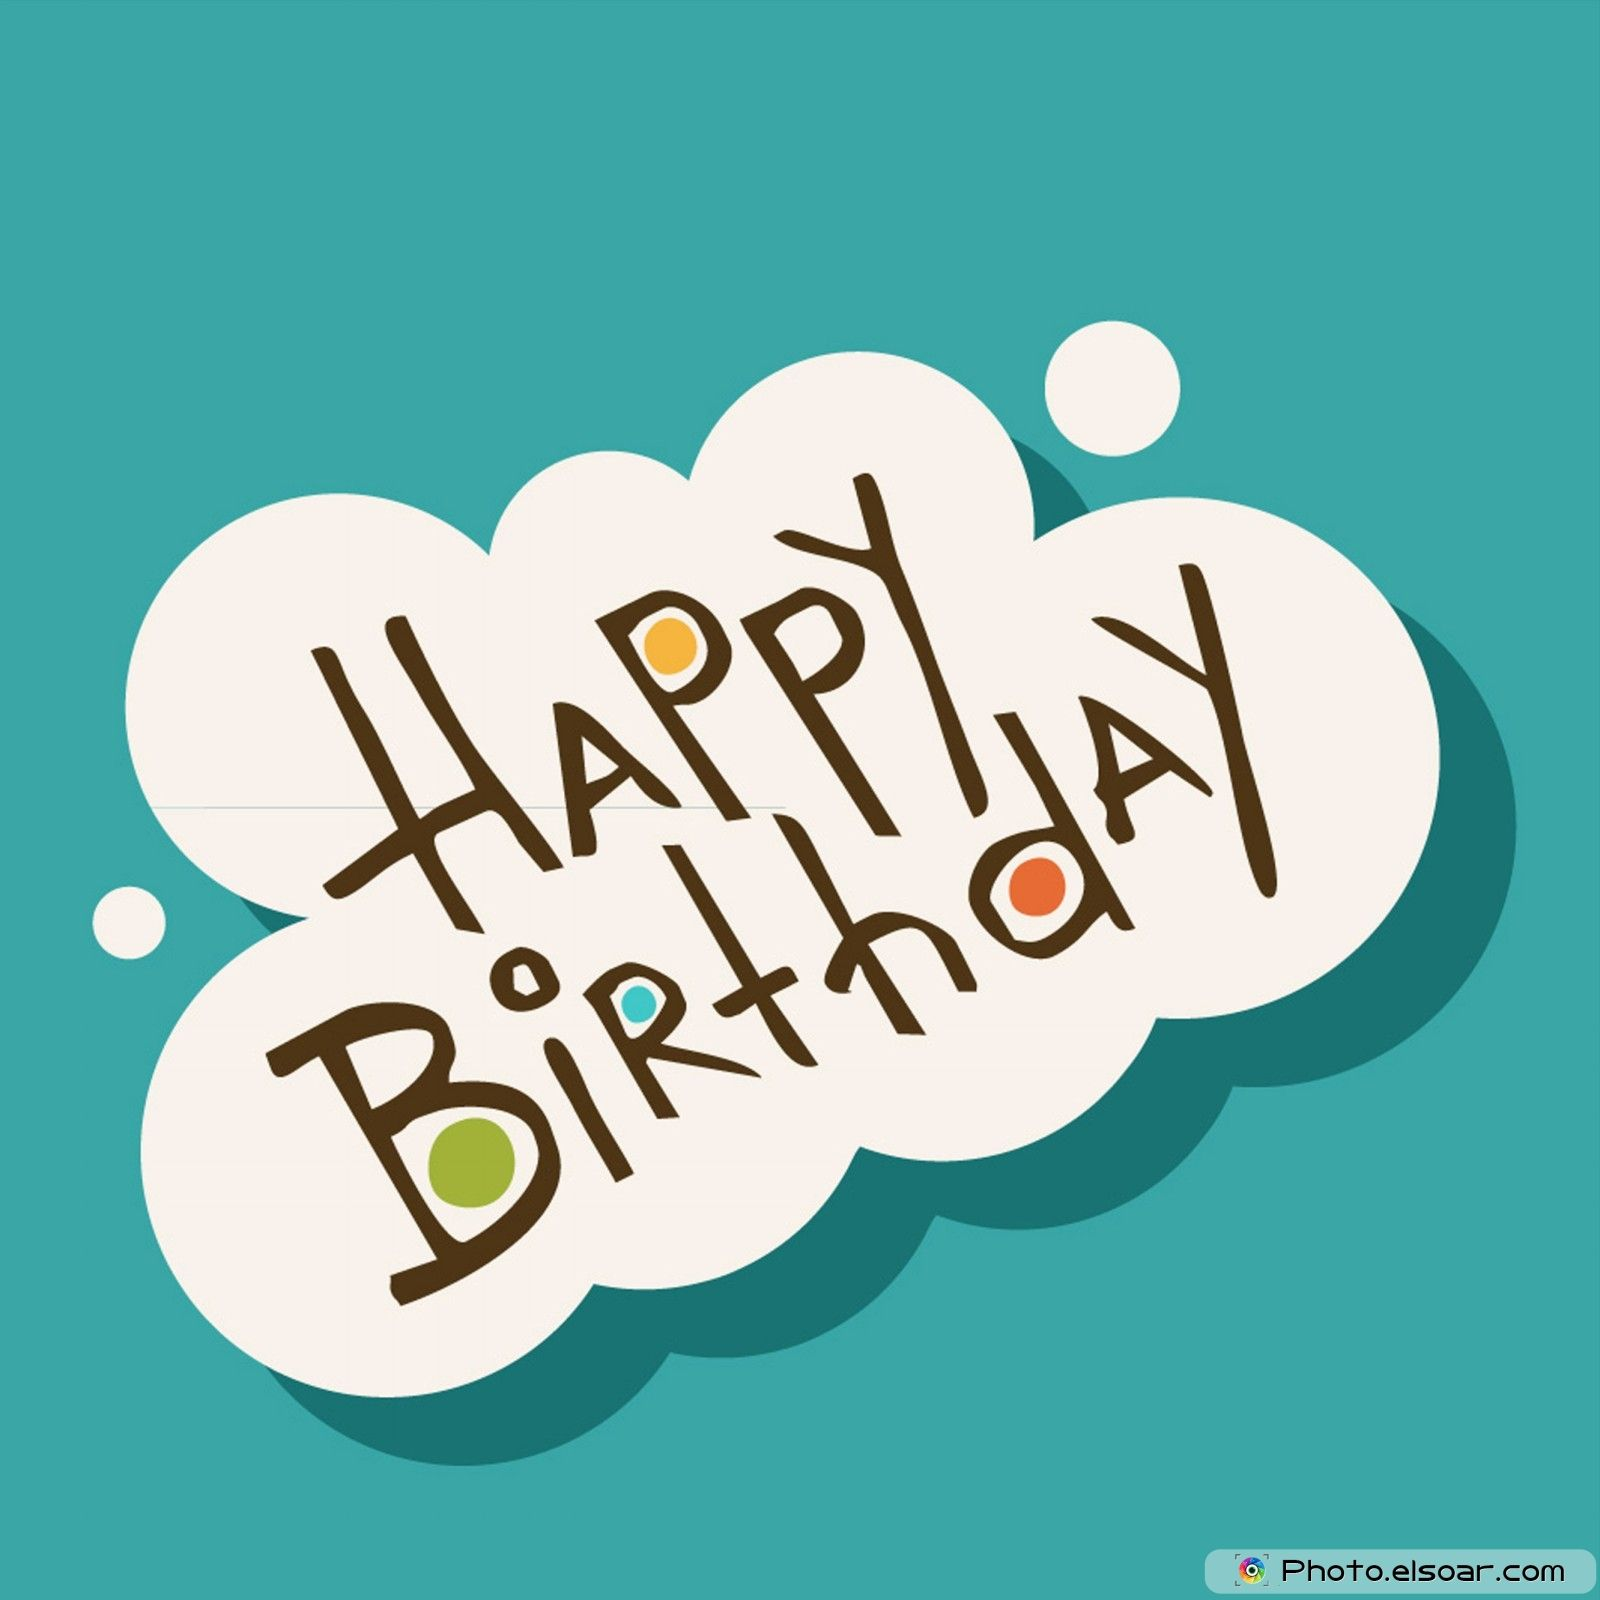 Shiny birthday card designg 16001600 hbd pinterest 22 happy birthday cards on bright backgrounds bookmarktalkfo Images